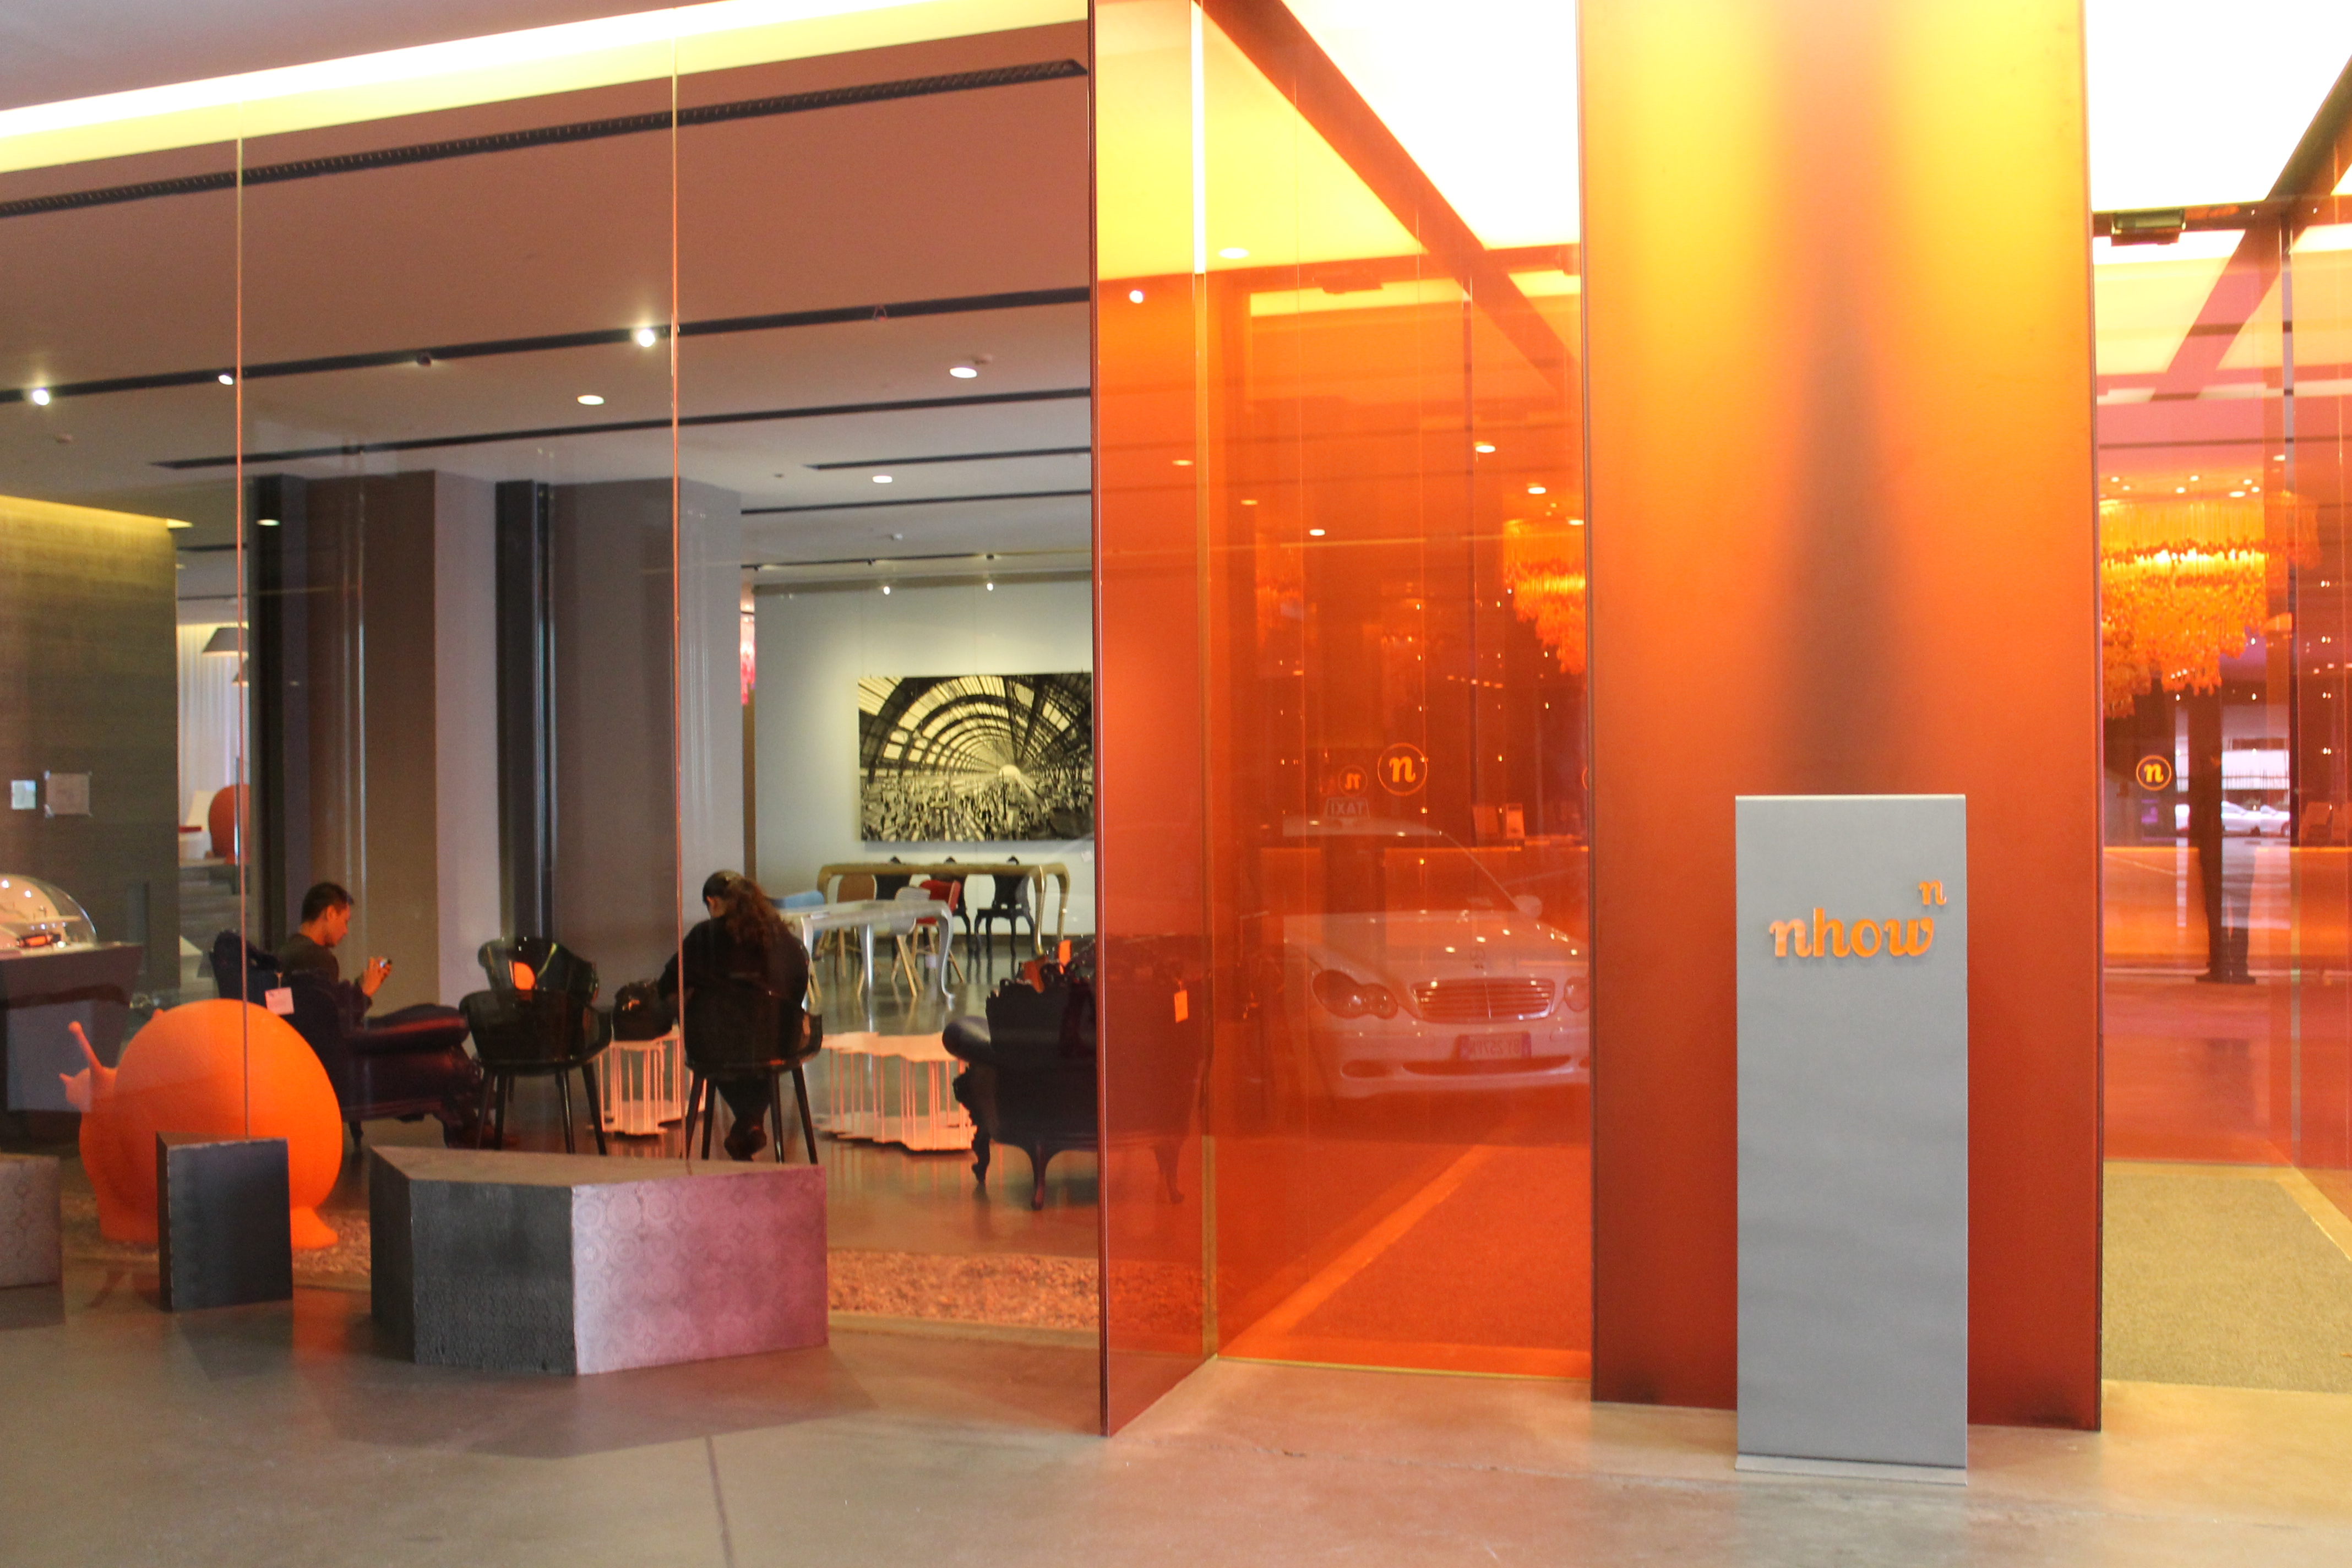 the works of art and design on show at nhow milano lost